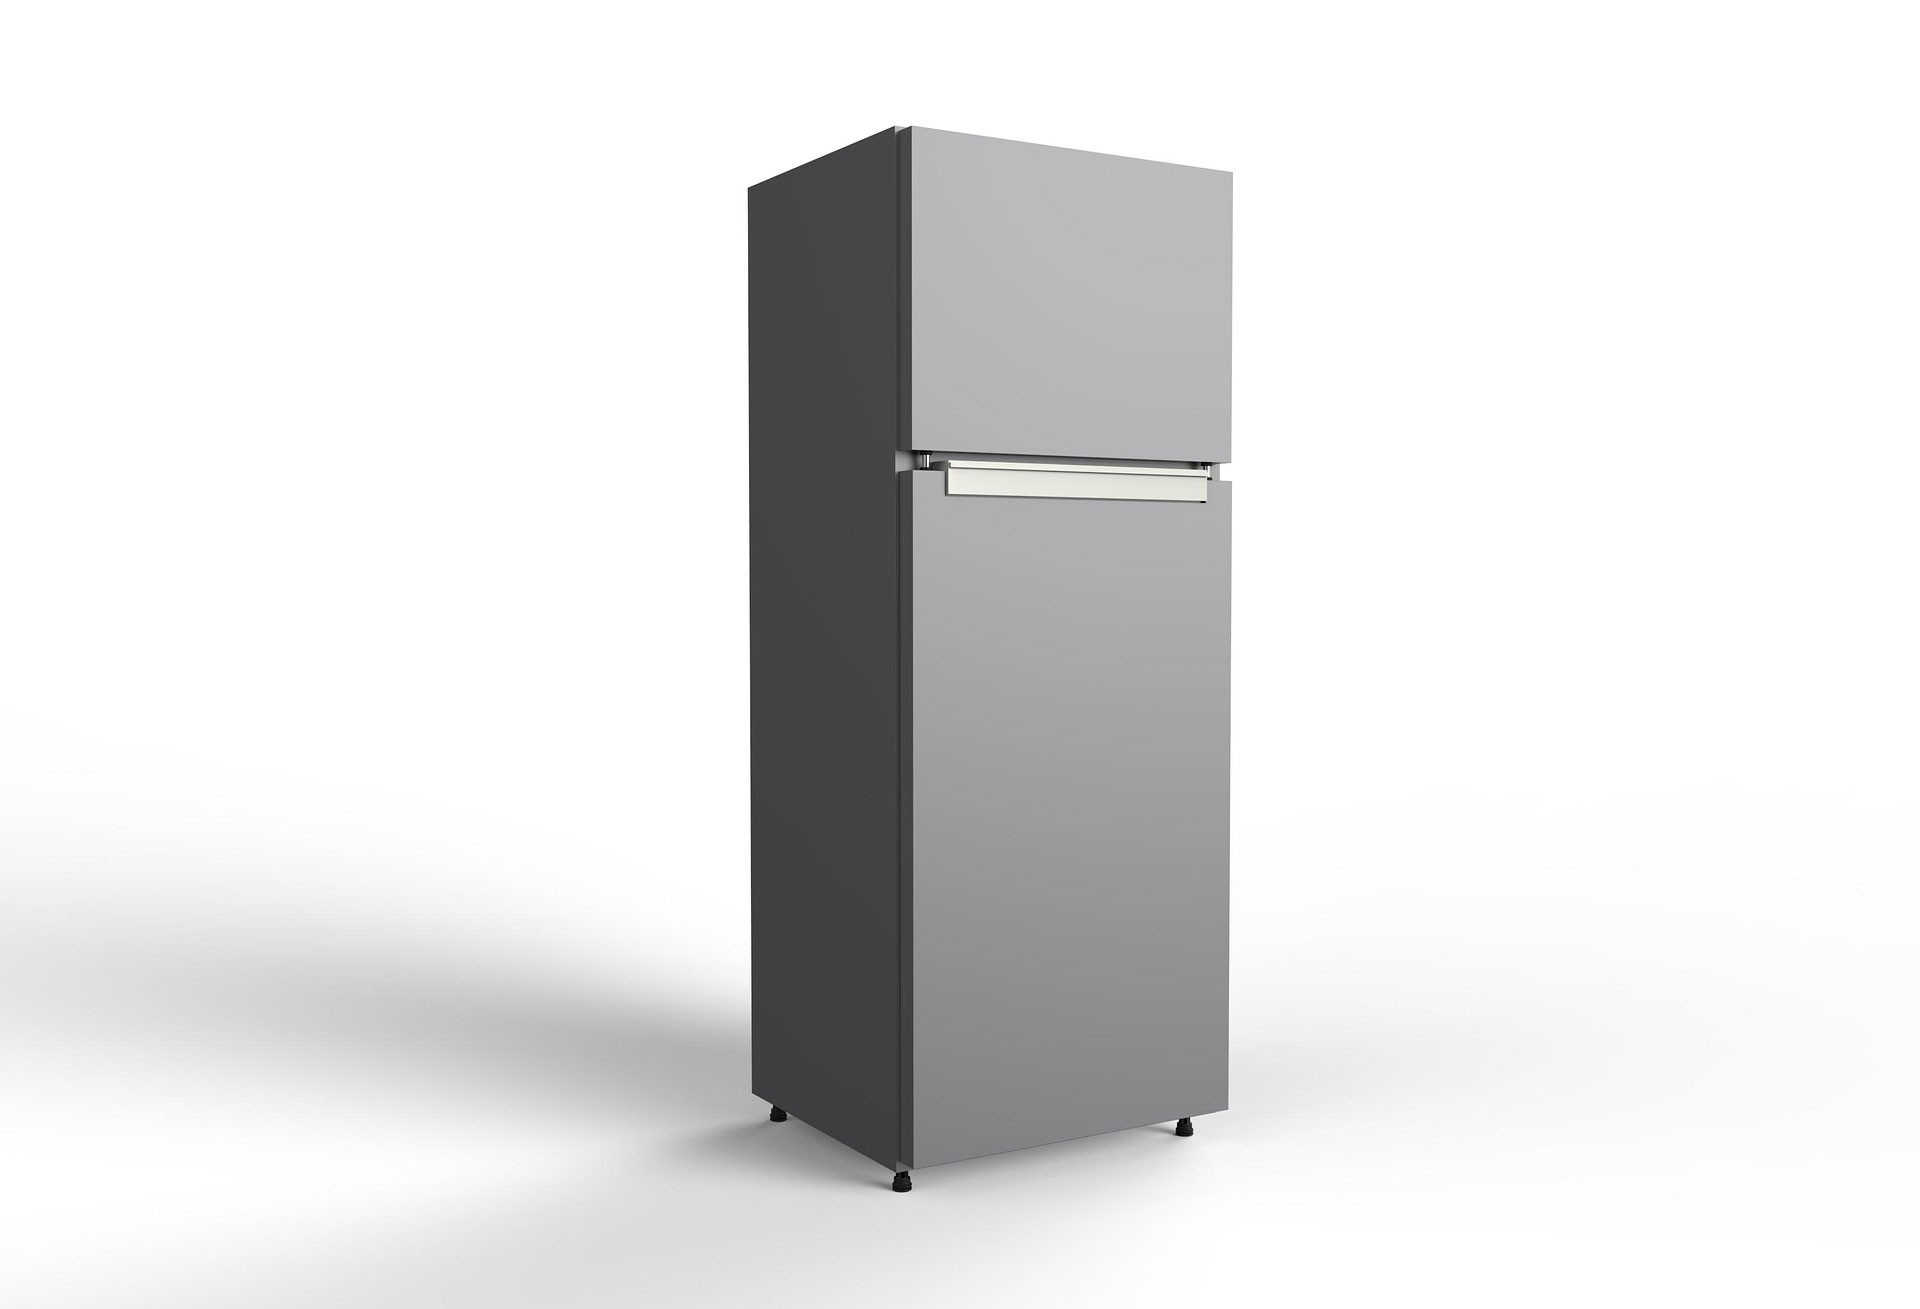 What to do if your refrigerator is leaking freon